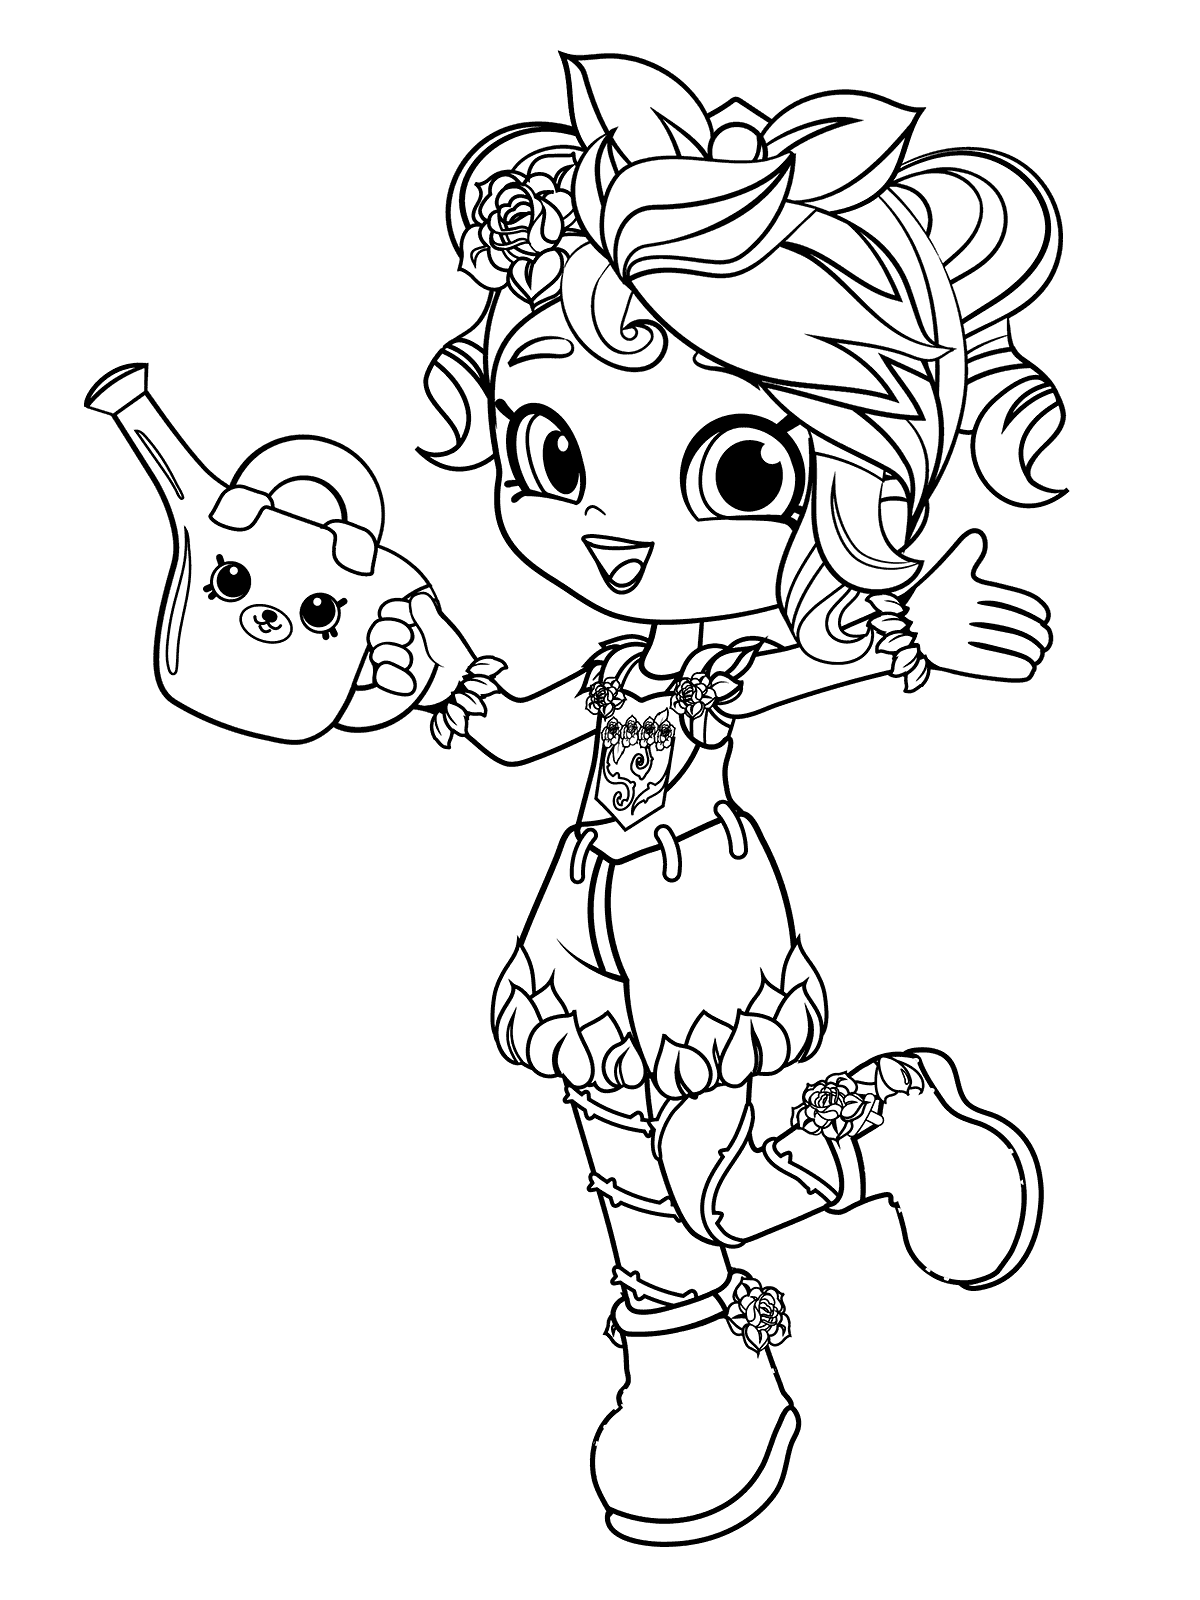 Coloring Rocks Shopkins Colouring Pages Coloring Pages For Girls Shopkins And Shoppies